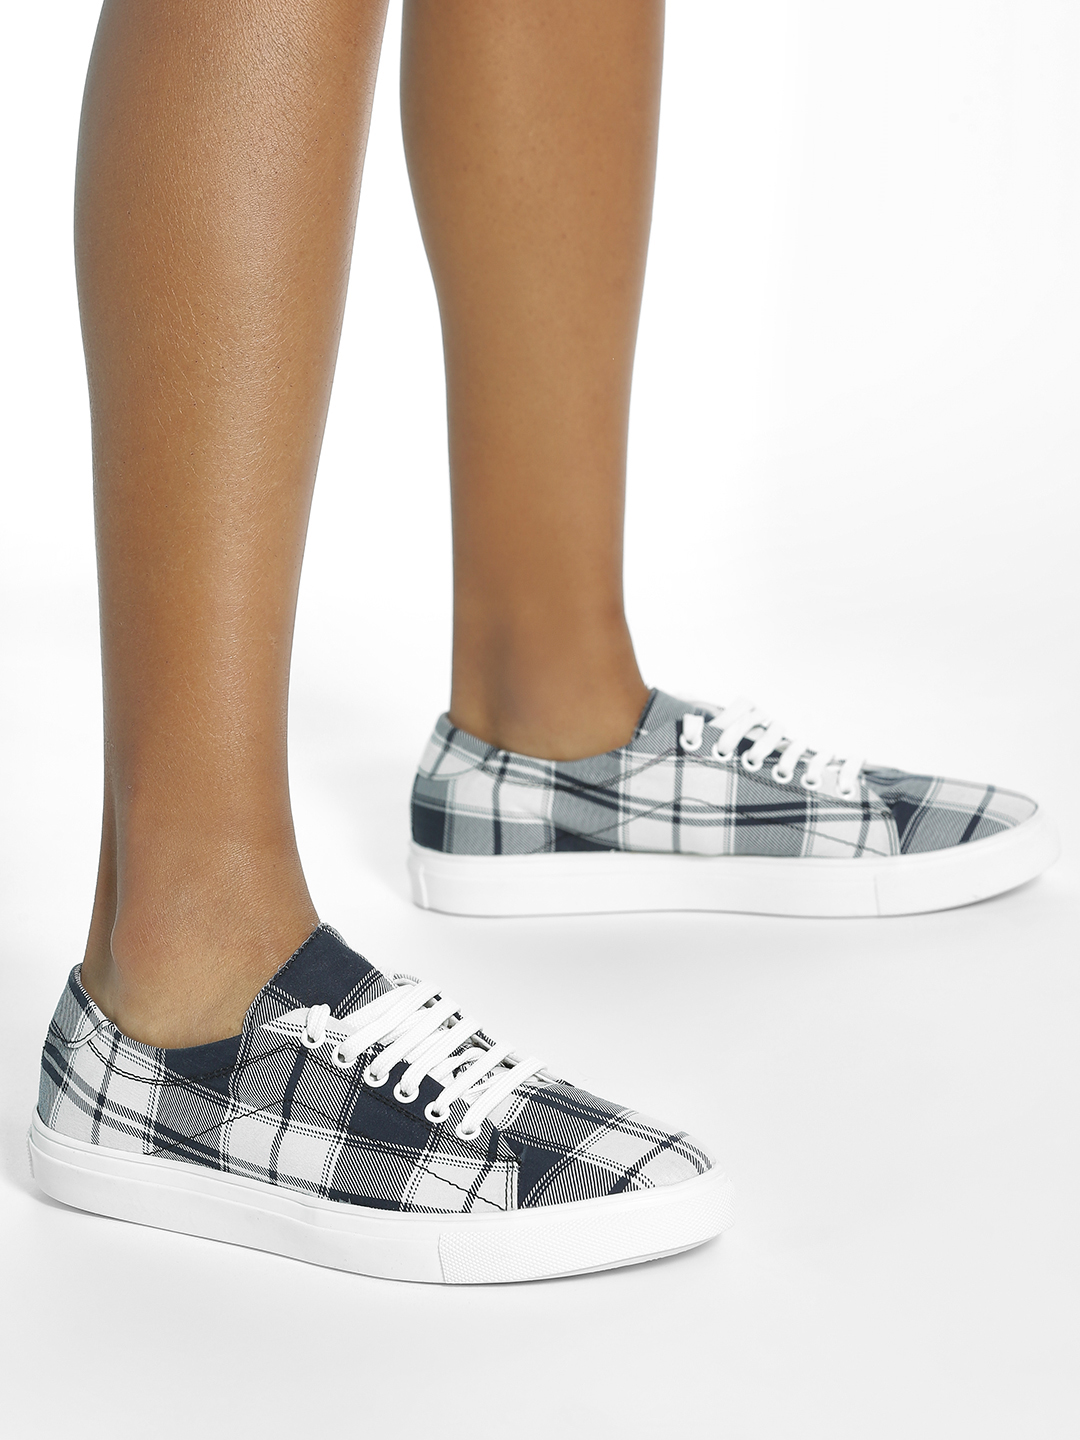 ADORLY Black Plaid Check Sneakers 1